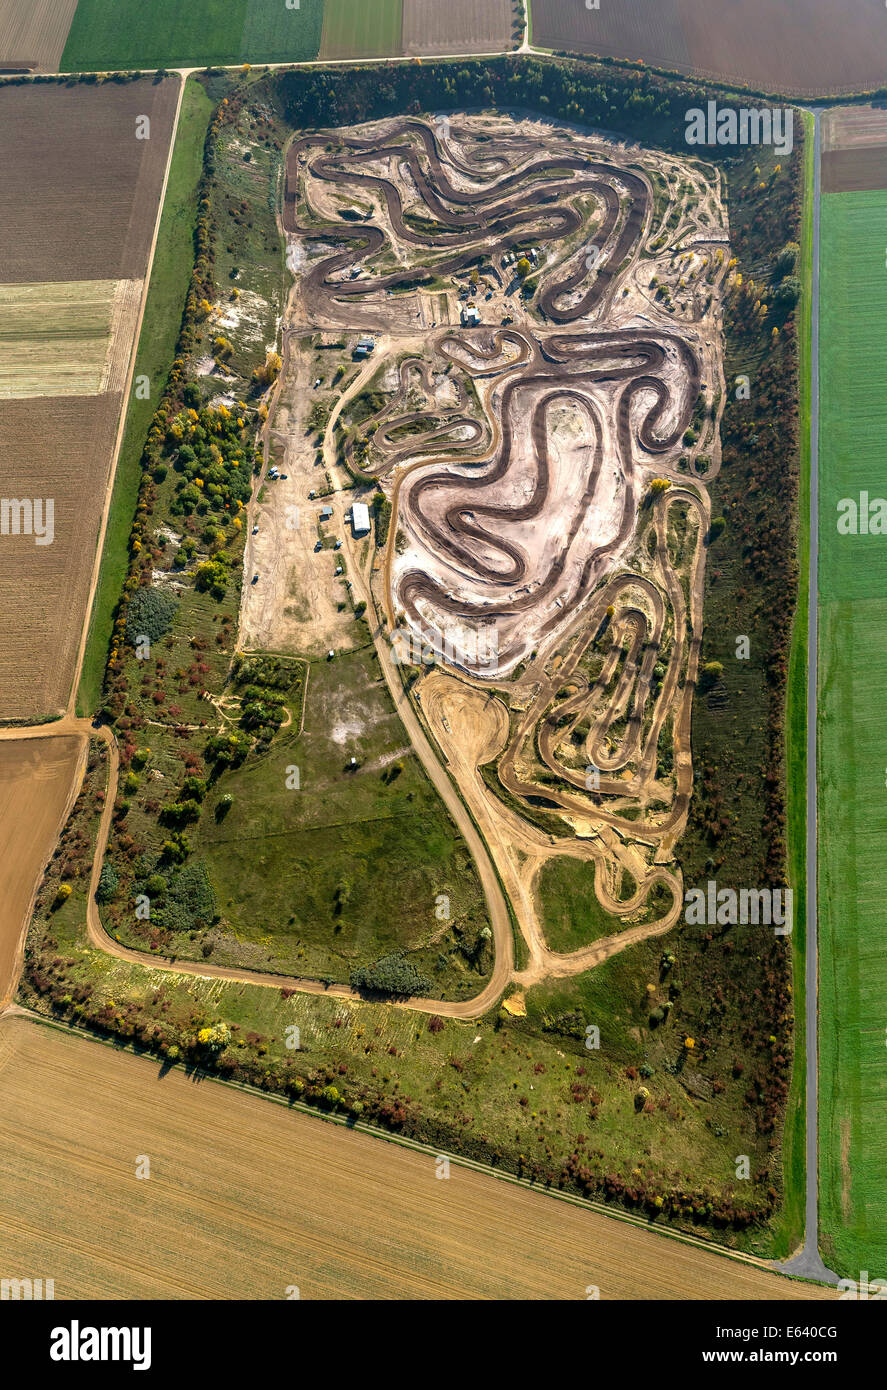 Aerial view, motocross track, Grevenbroich, North Rhine-Westphalia, Germany - Stock Image